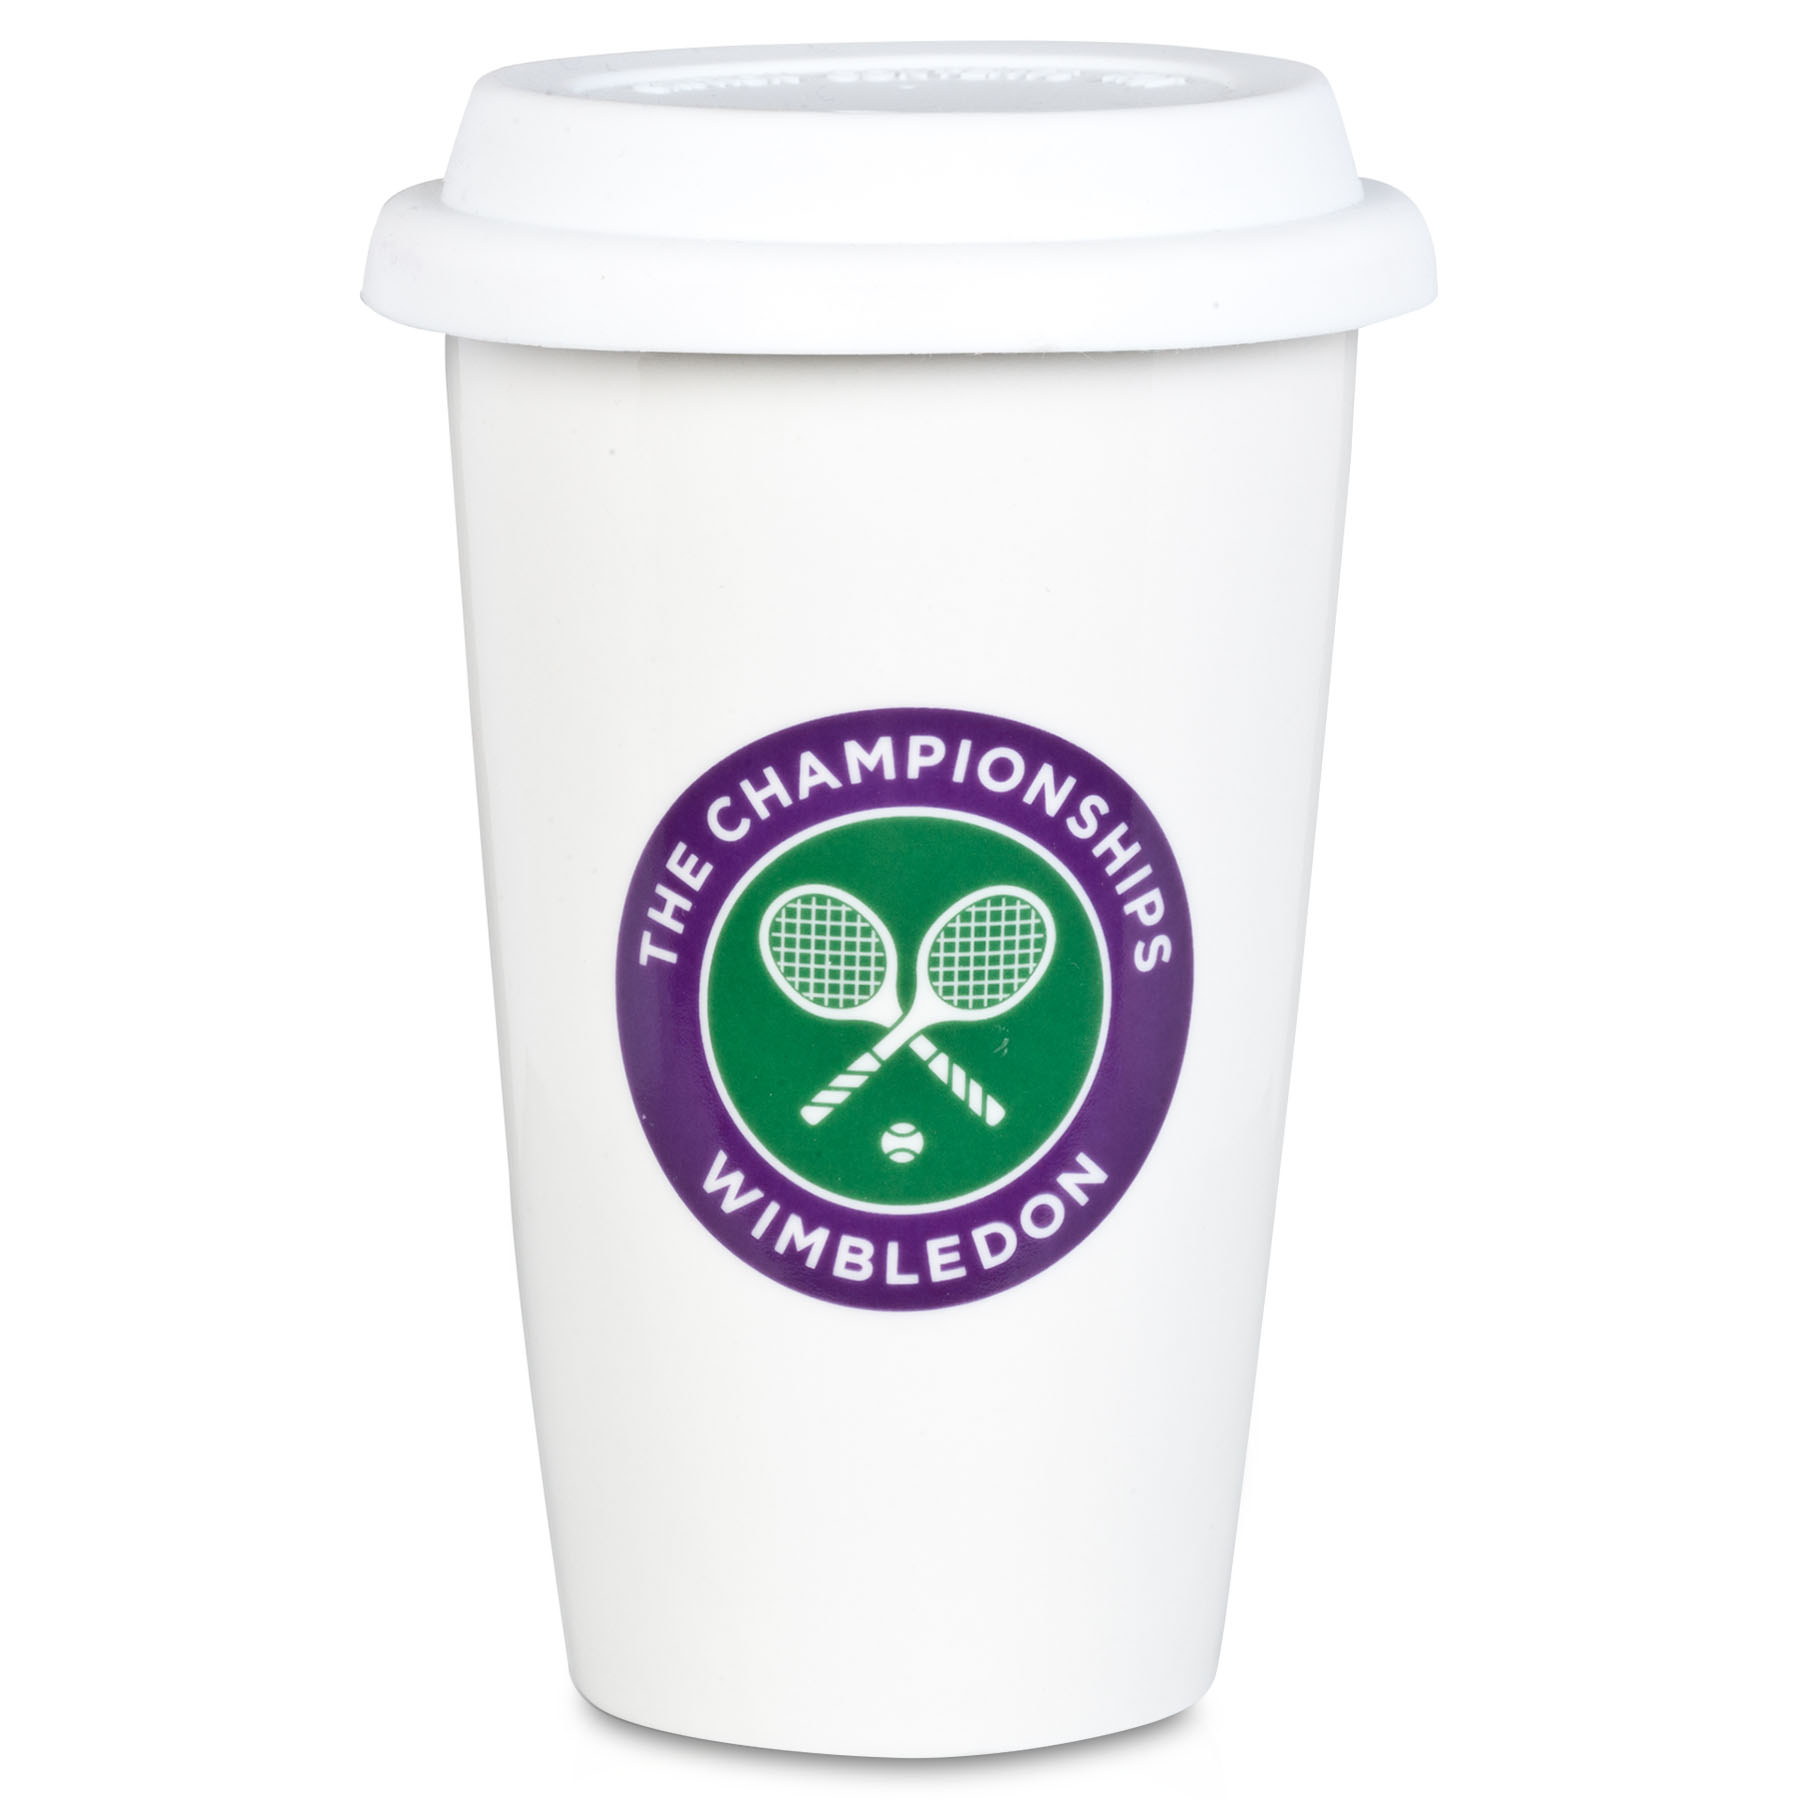 Wimbledon Take Away Coffee Mug - White